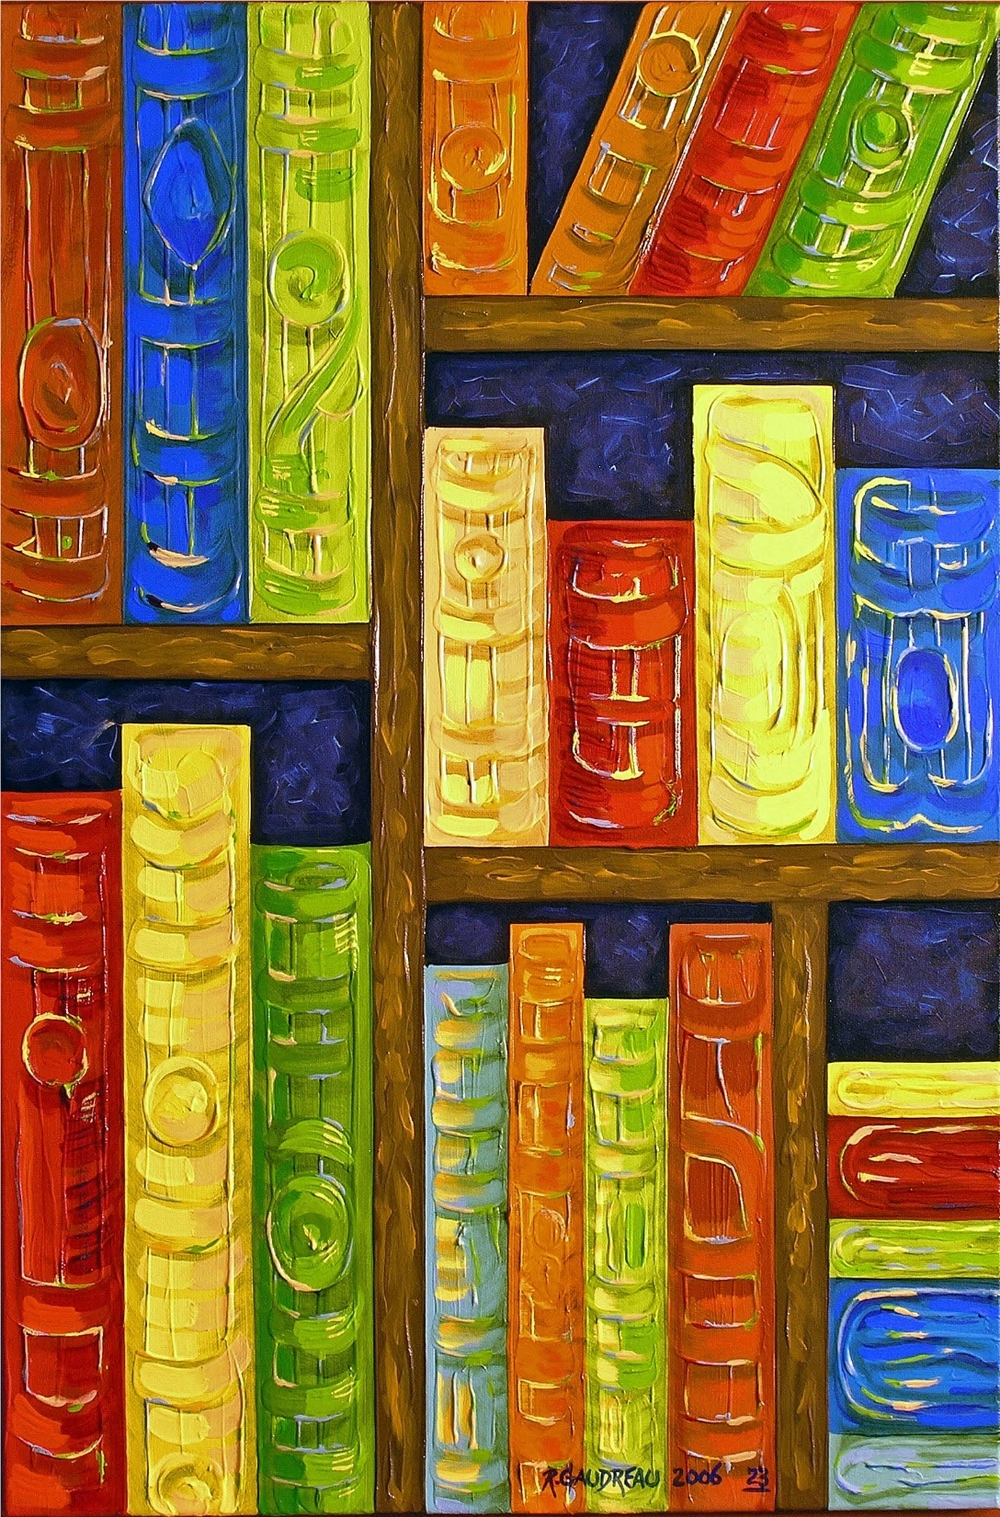 23  Books 2006 oil on canvas 36 x 24 inches